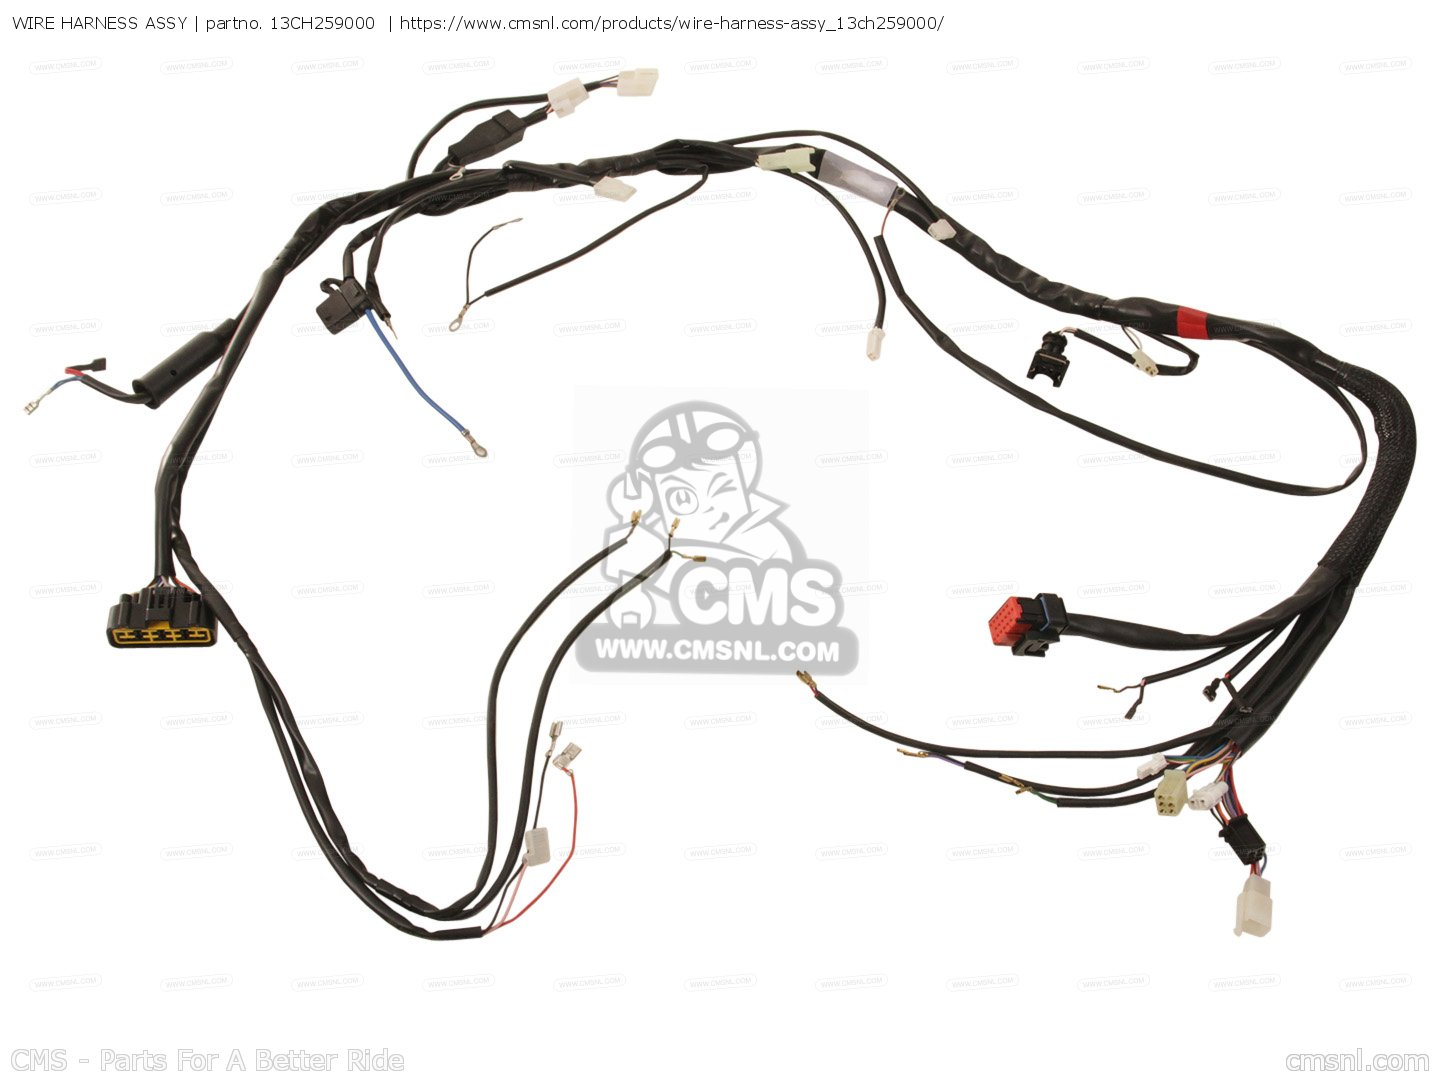 Wire Harness Assy For Dt50r 13cb Europe 1k13c 300e1